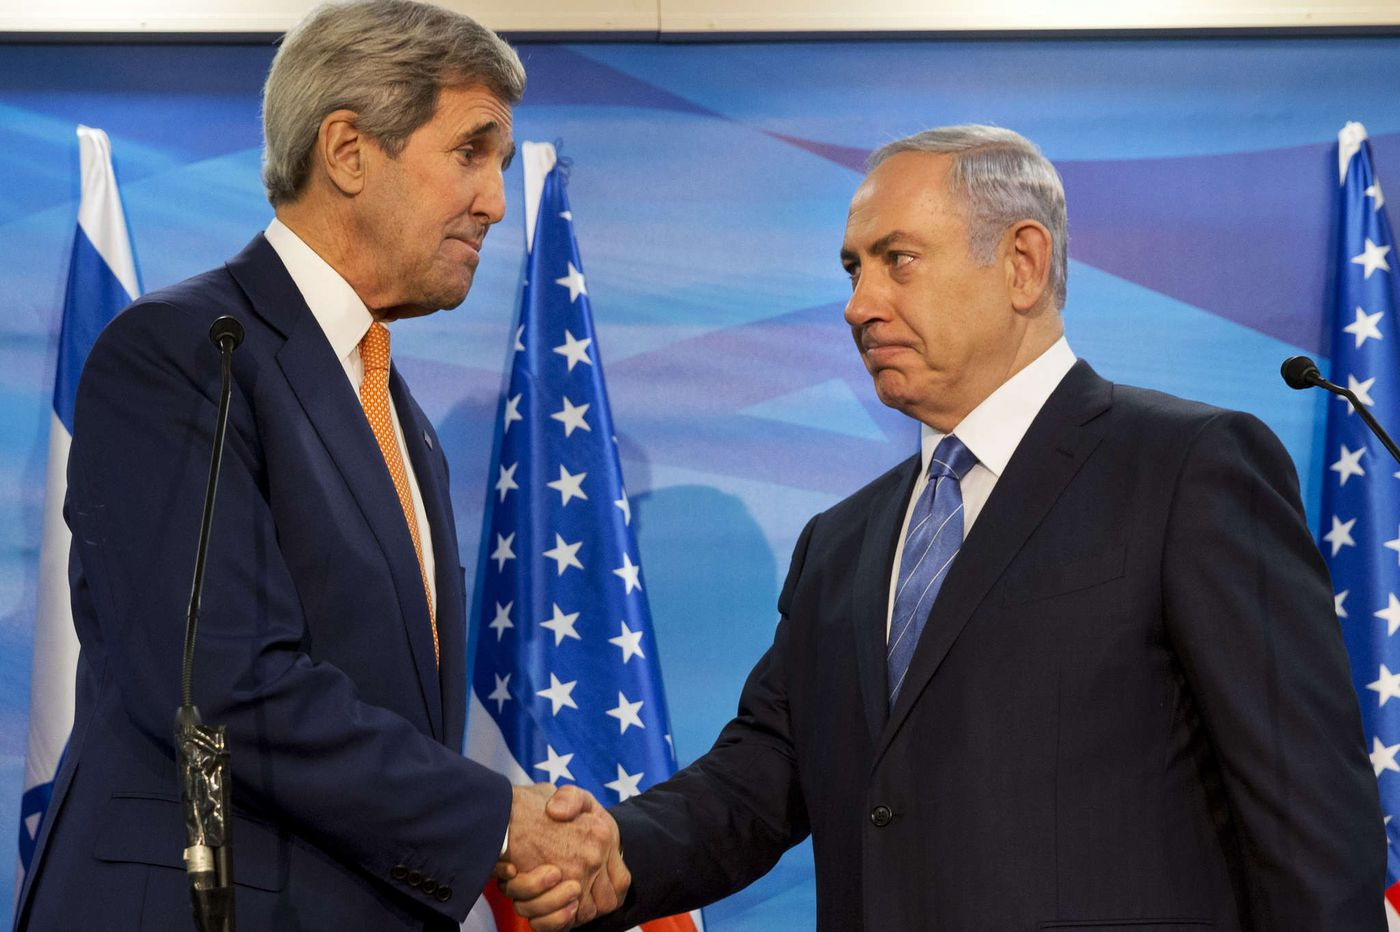 Kerry supports Israel's defense against attacks